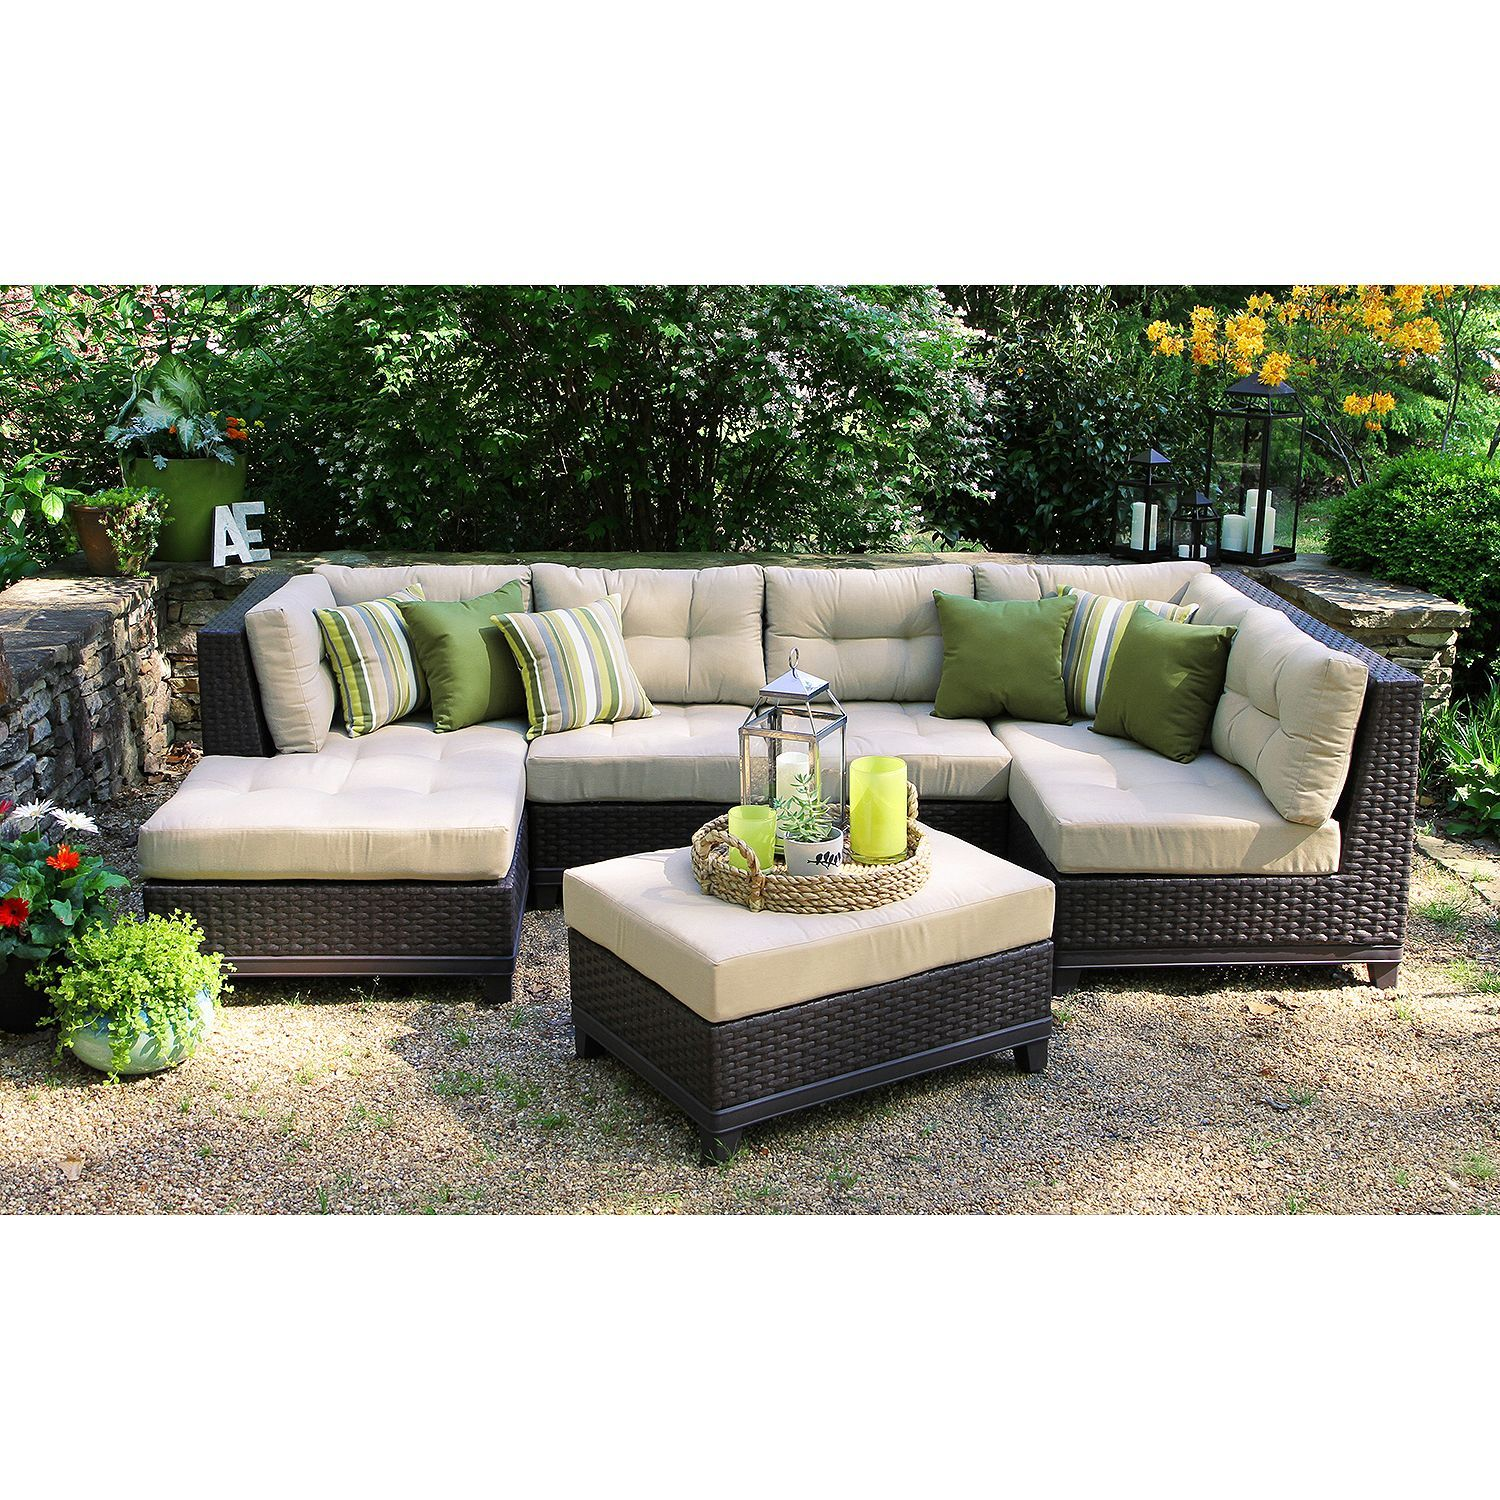 Hillborough 4 piece sectional multiple color choices sams club sectional patio furniture